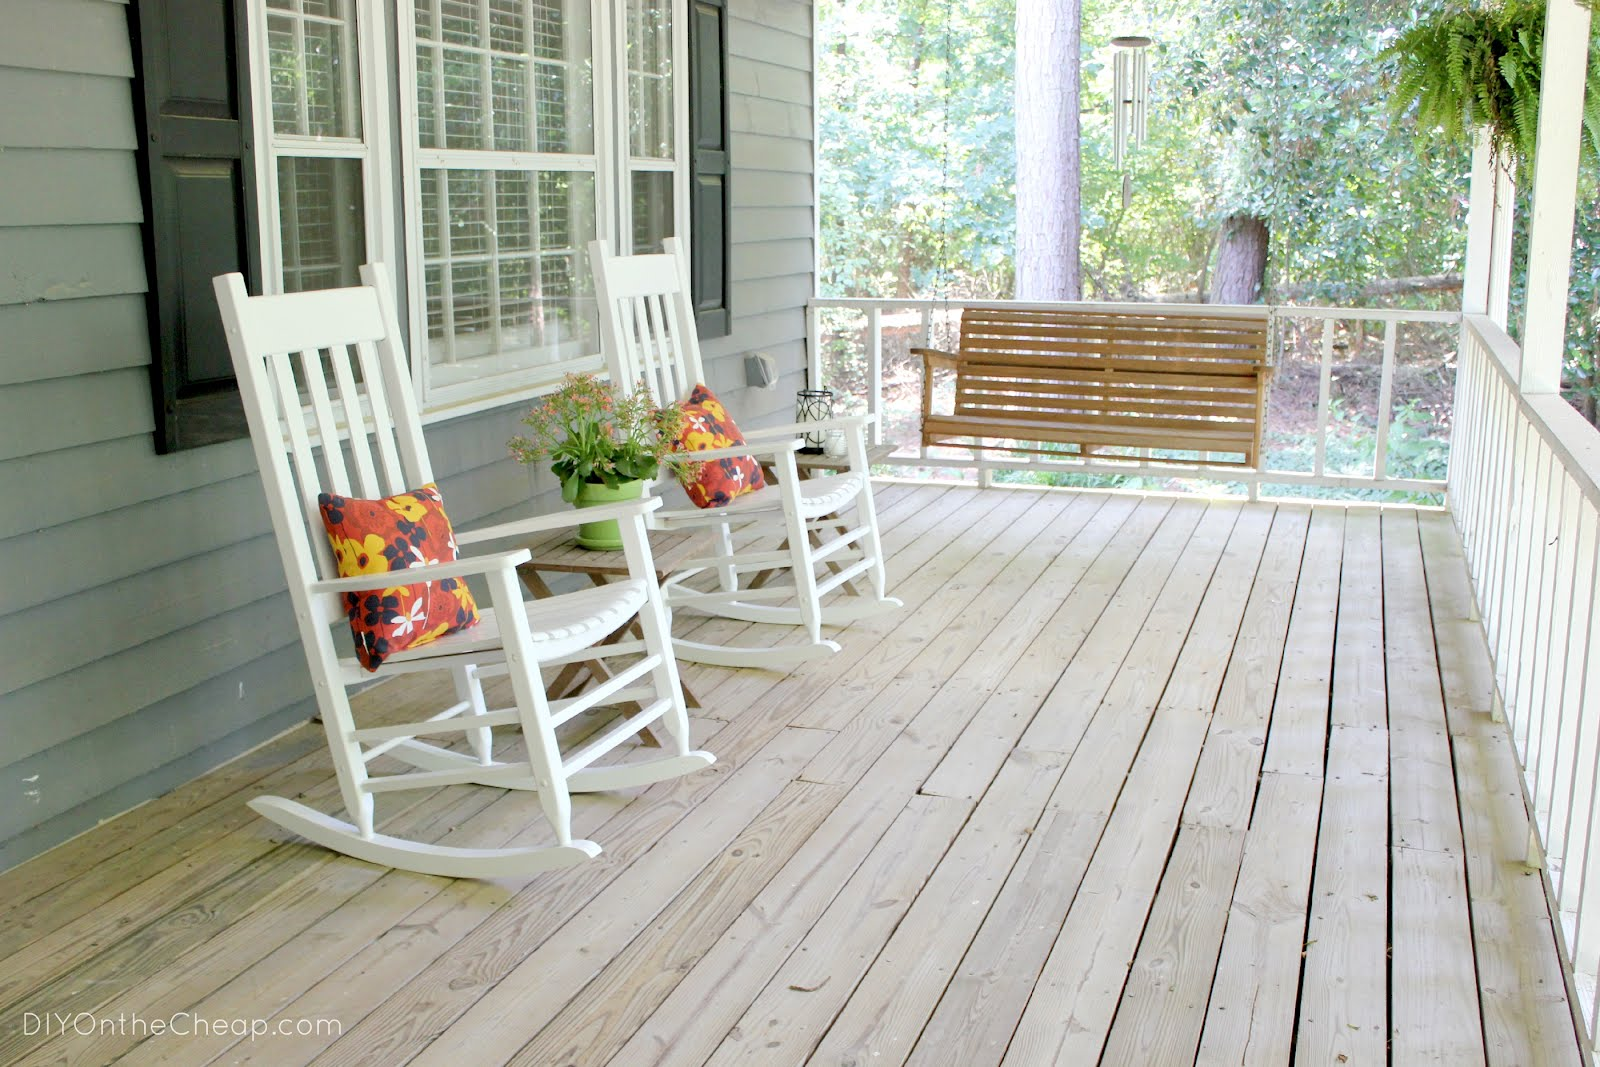 Front Porch Chairs Diy On The Cheap Welcome To Our Home Part 1